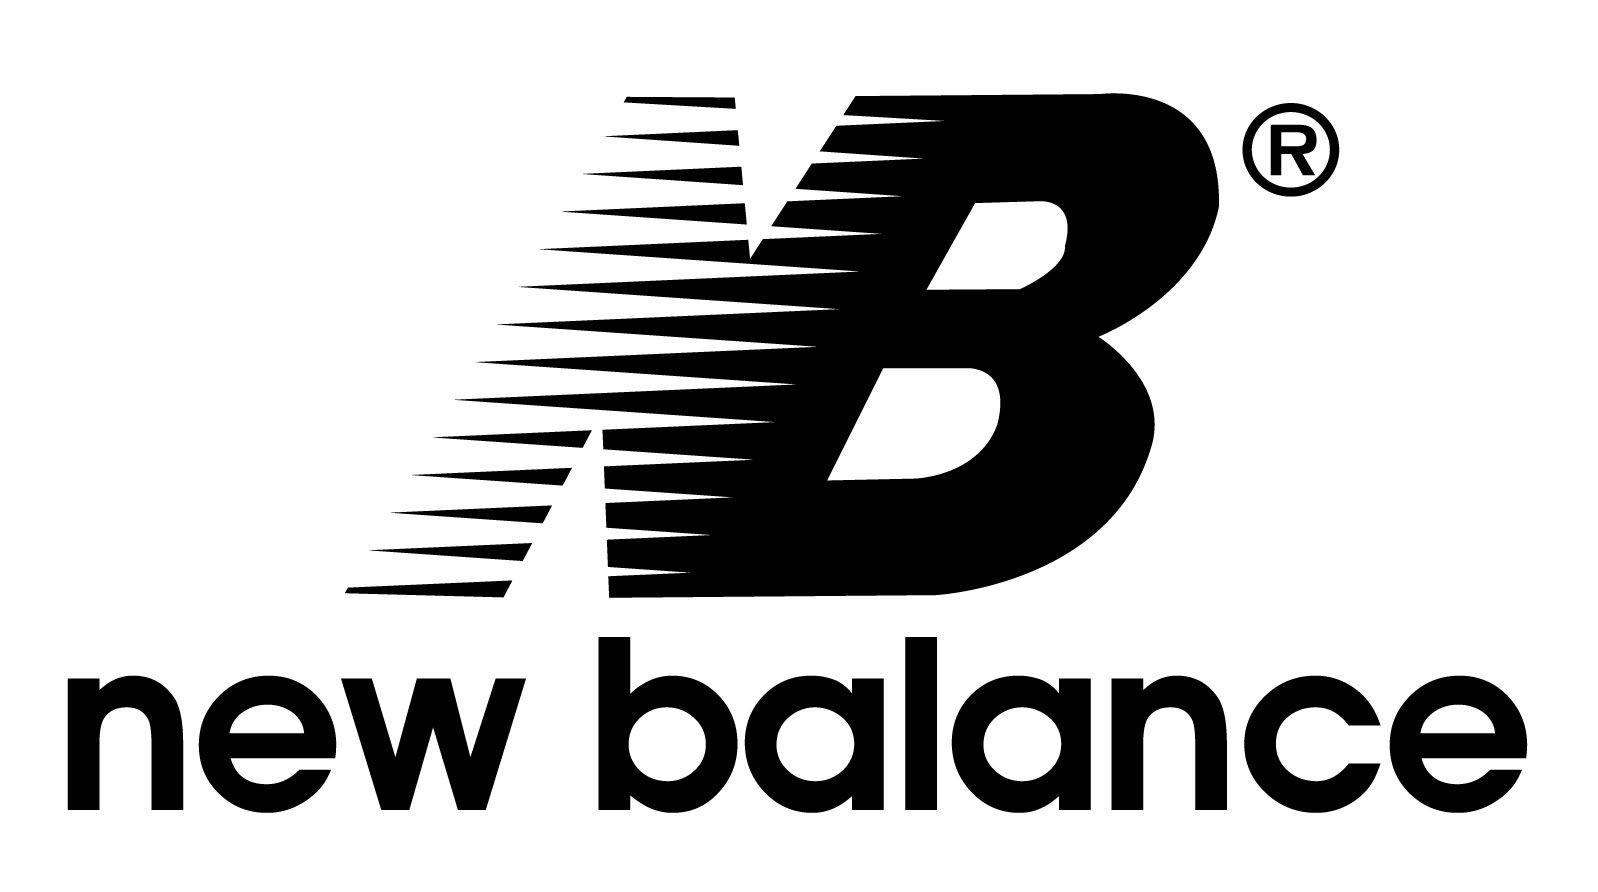 new balance shoe brands